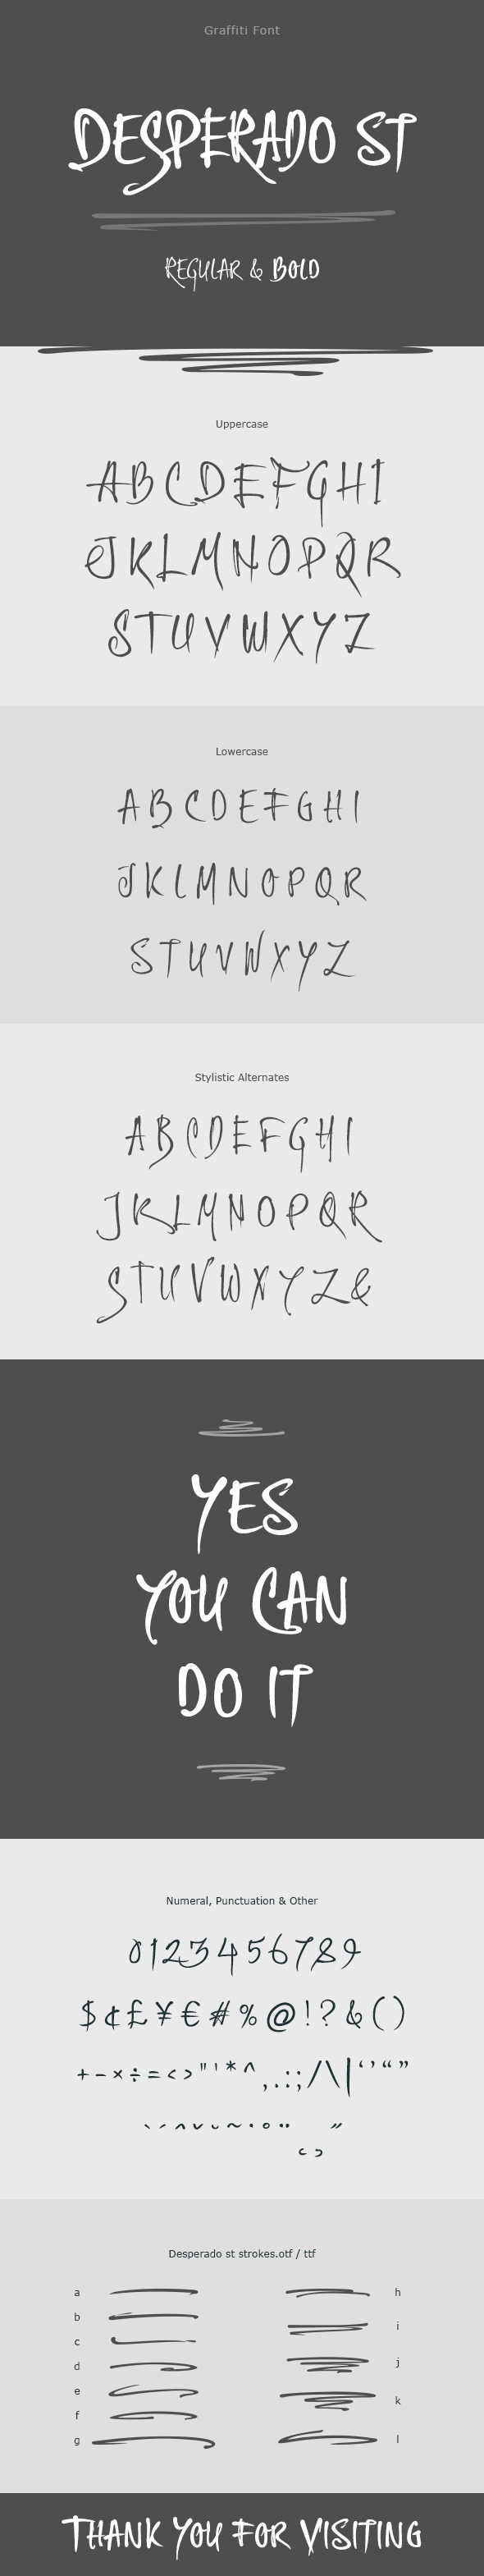 Graffiti fonts from graphicriver